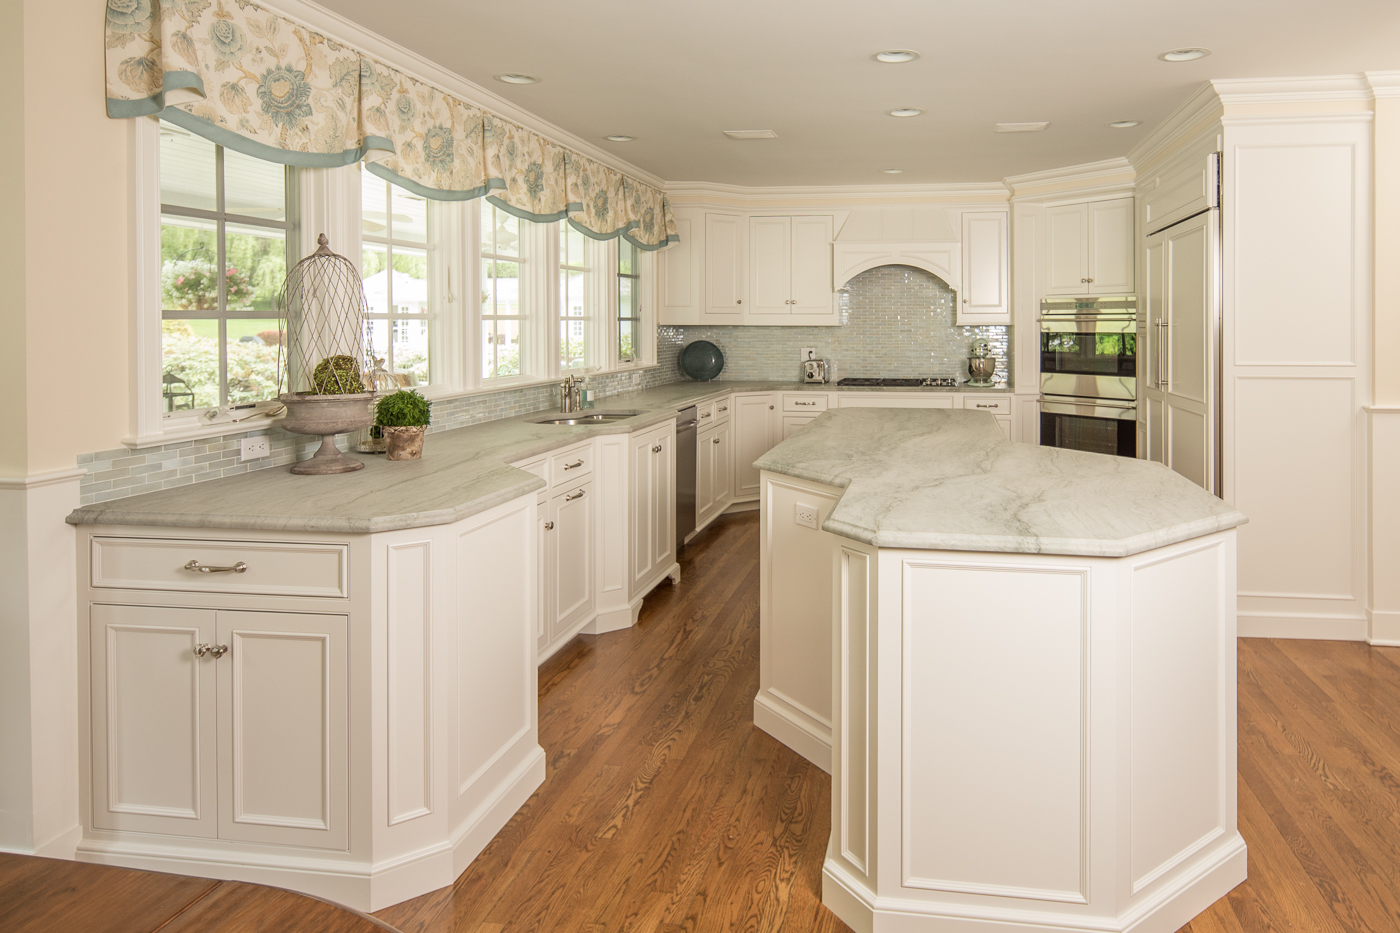 Kitchen Design Ct Prepossessing Ackley Cabinet Llc Inspiration Design